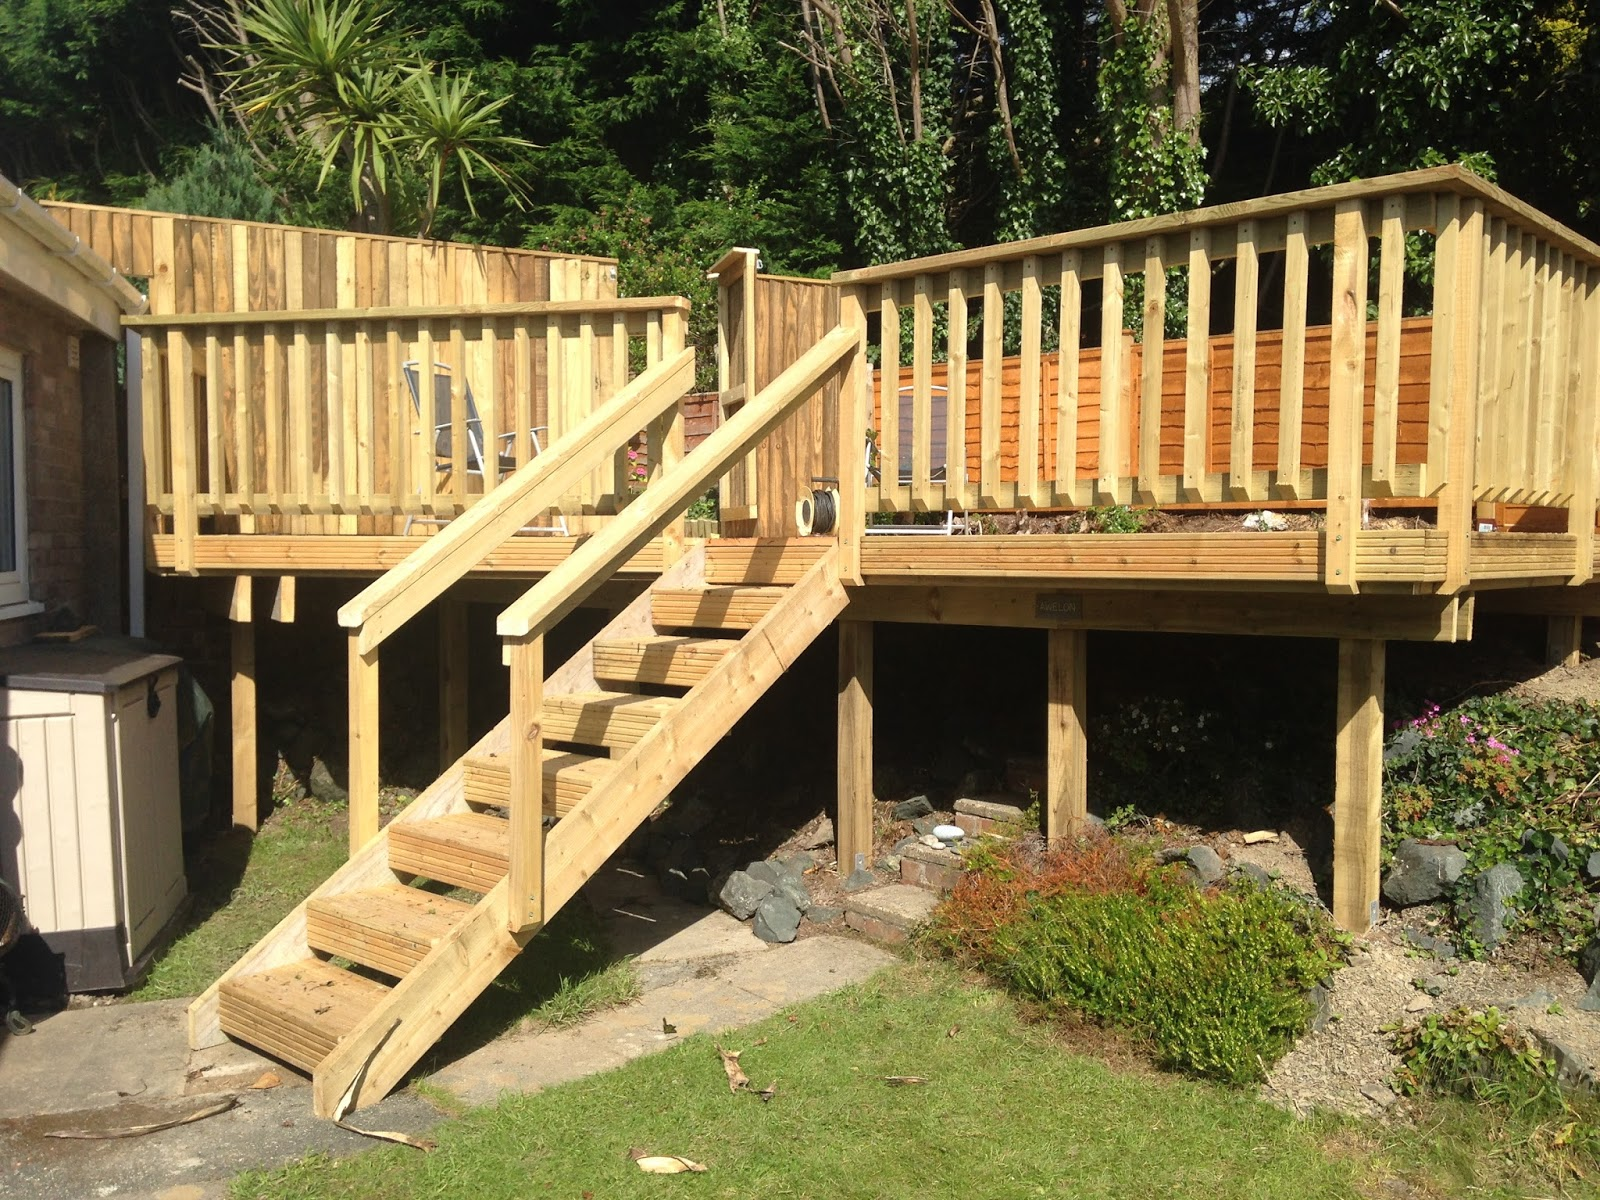 Garden carpentry timber decking design and build our for Timber deck construction